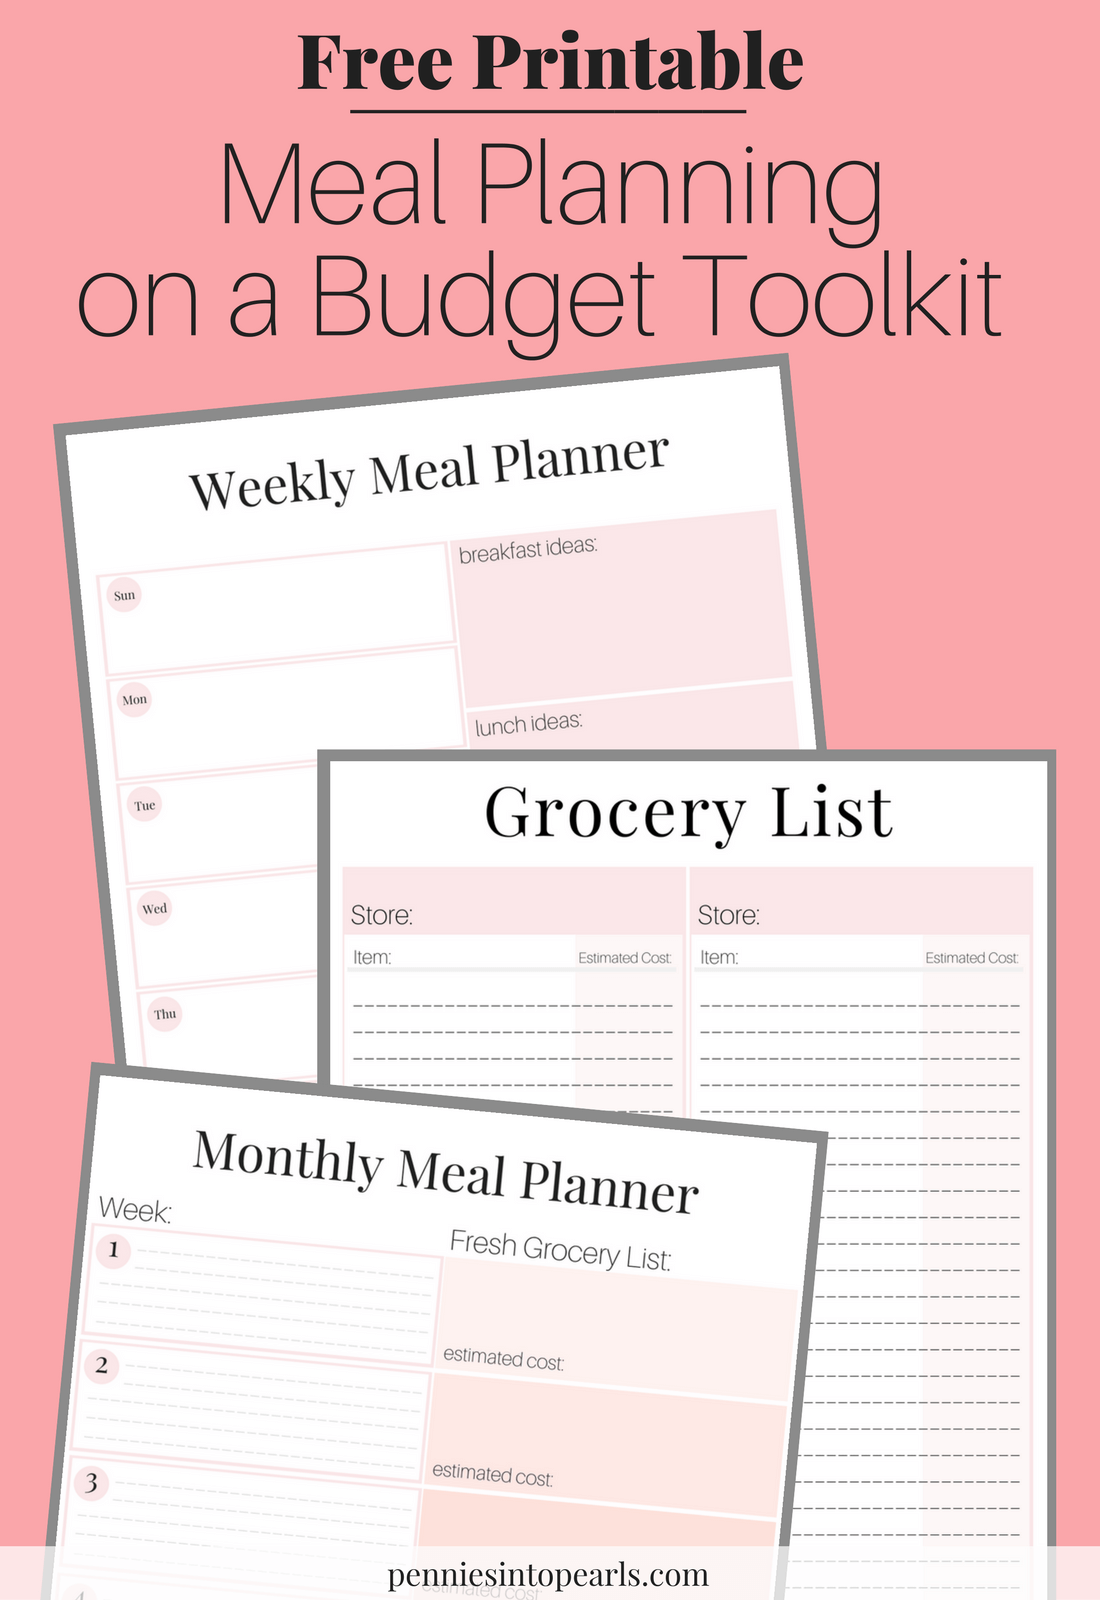 photo relating to Printable Meal Plan referred to as Totally free Printable - Evening meal Designing upon a Price range Toolkit